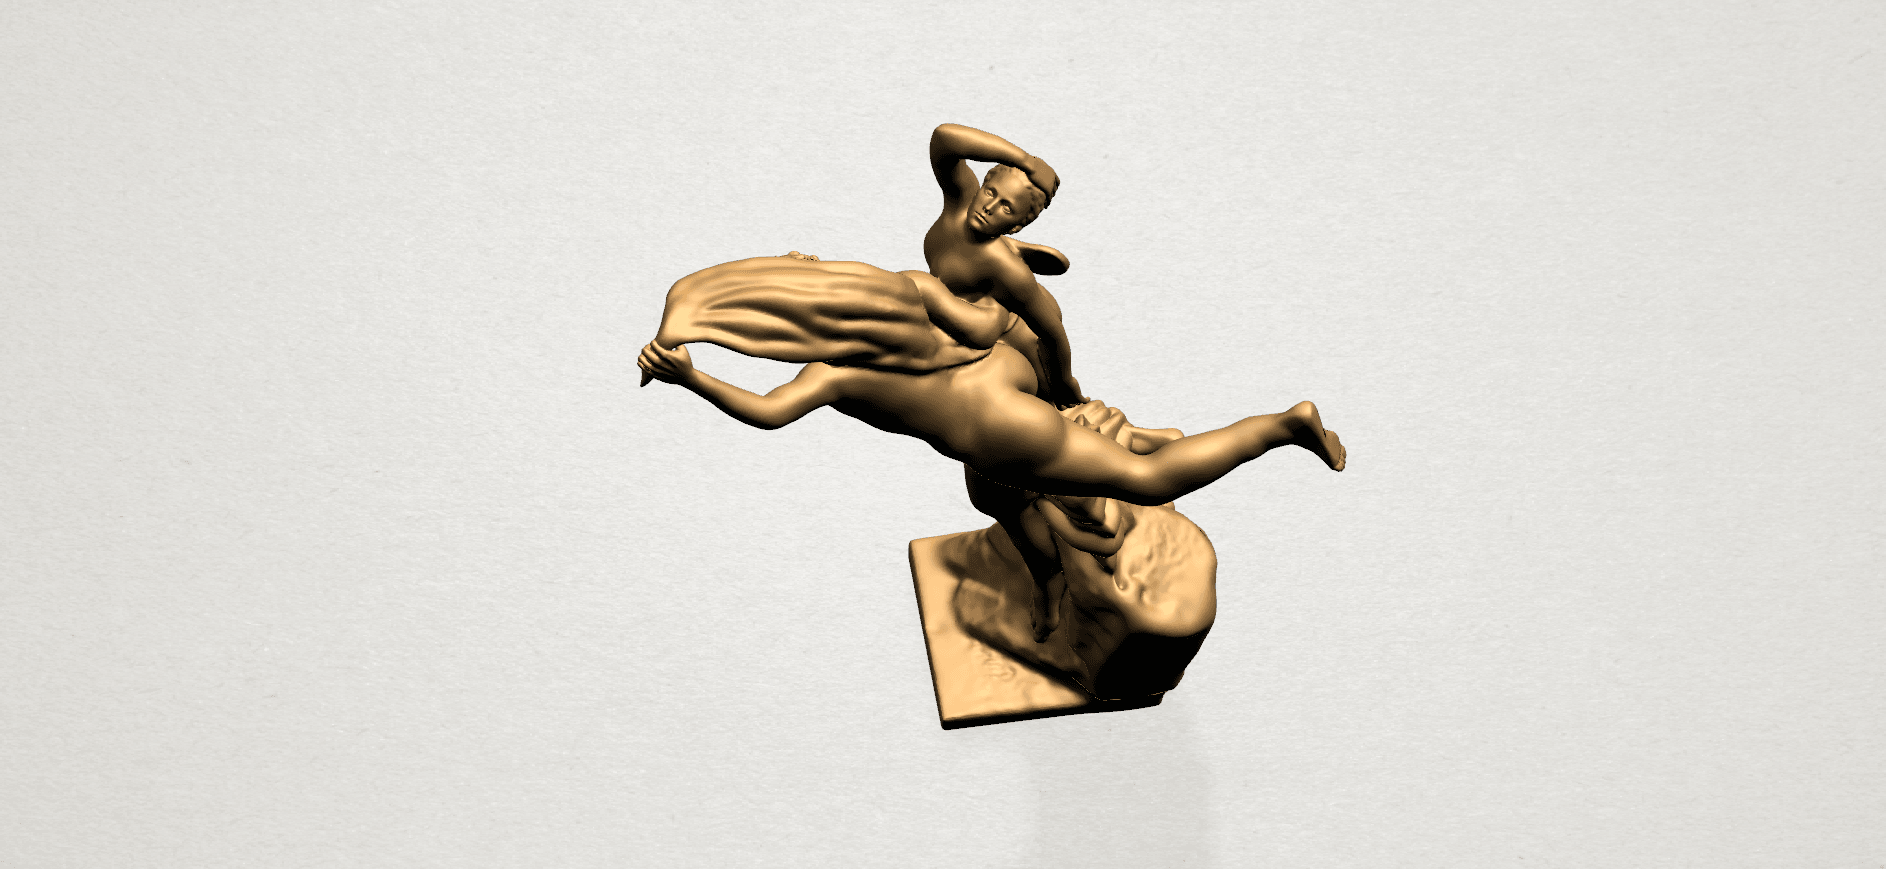 Cupid and Psyche - A13.png Download free STL file Cupid and Psyche • 3D printing template, GeorgesNikkei